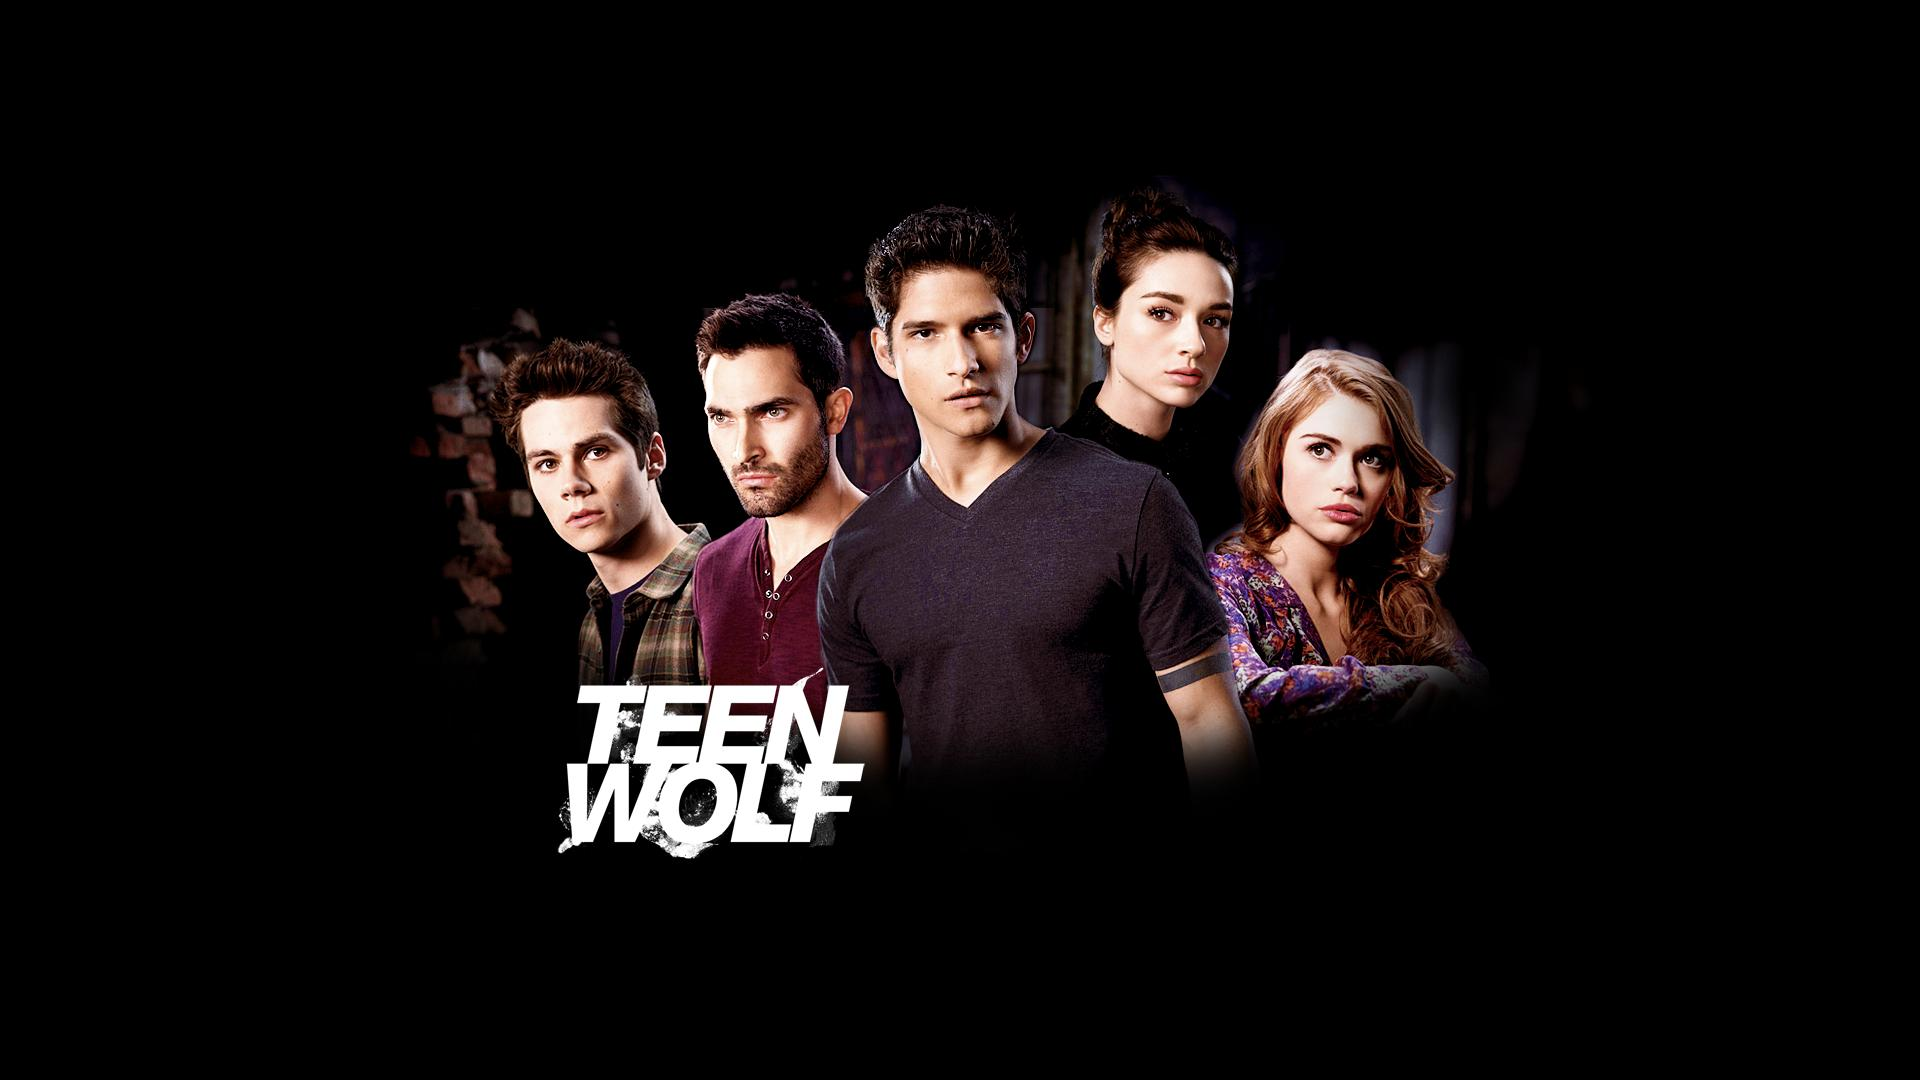 Teen wolf pictures opinion you